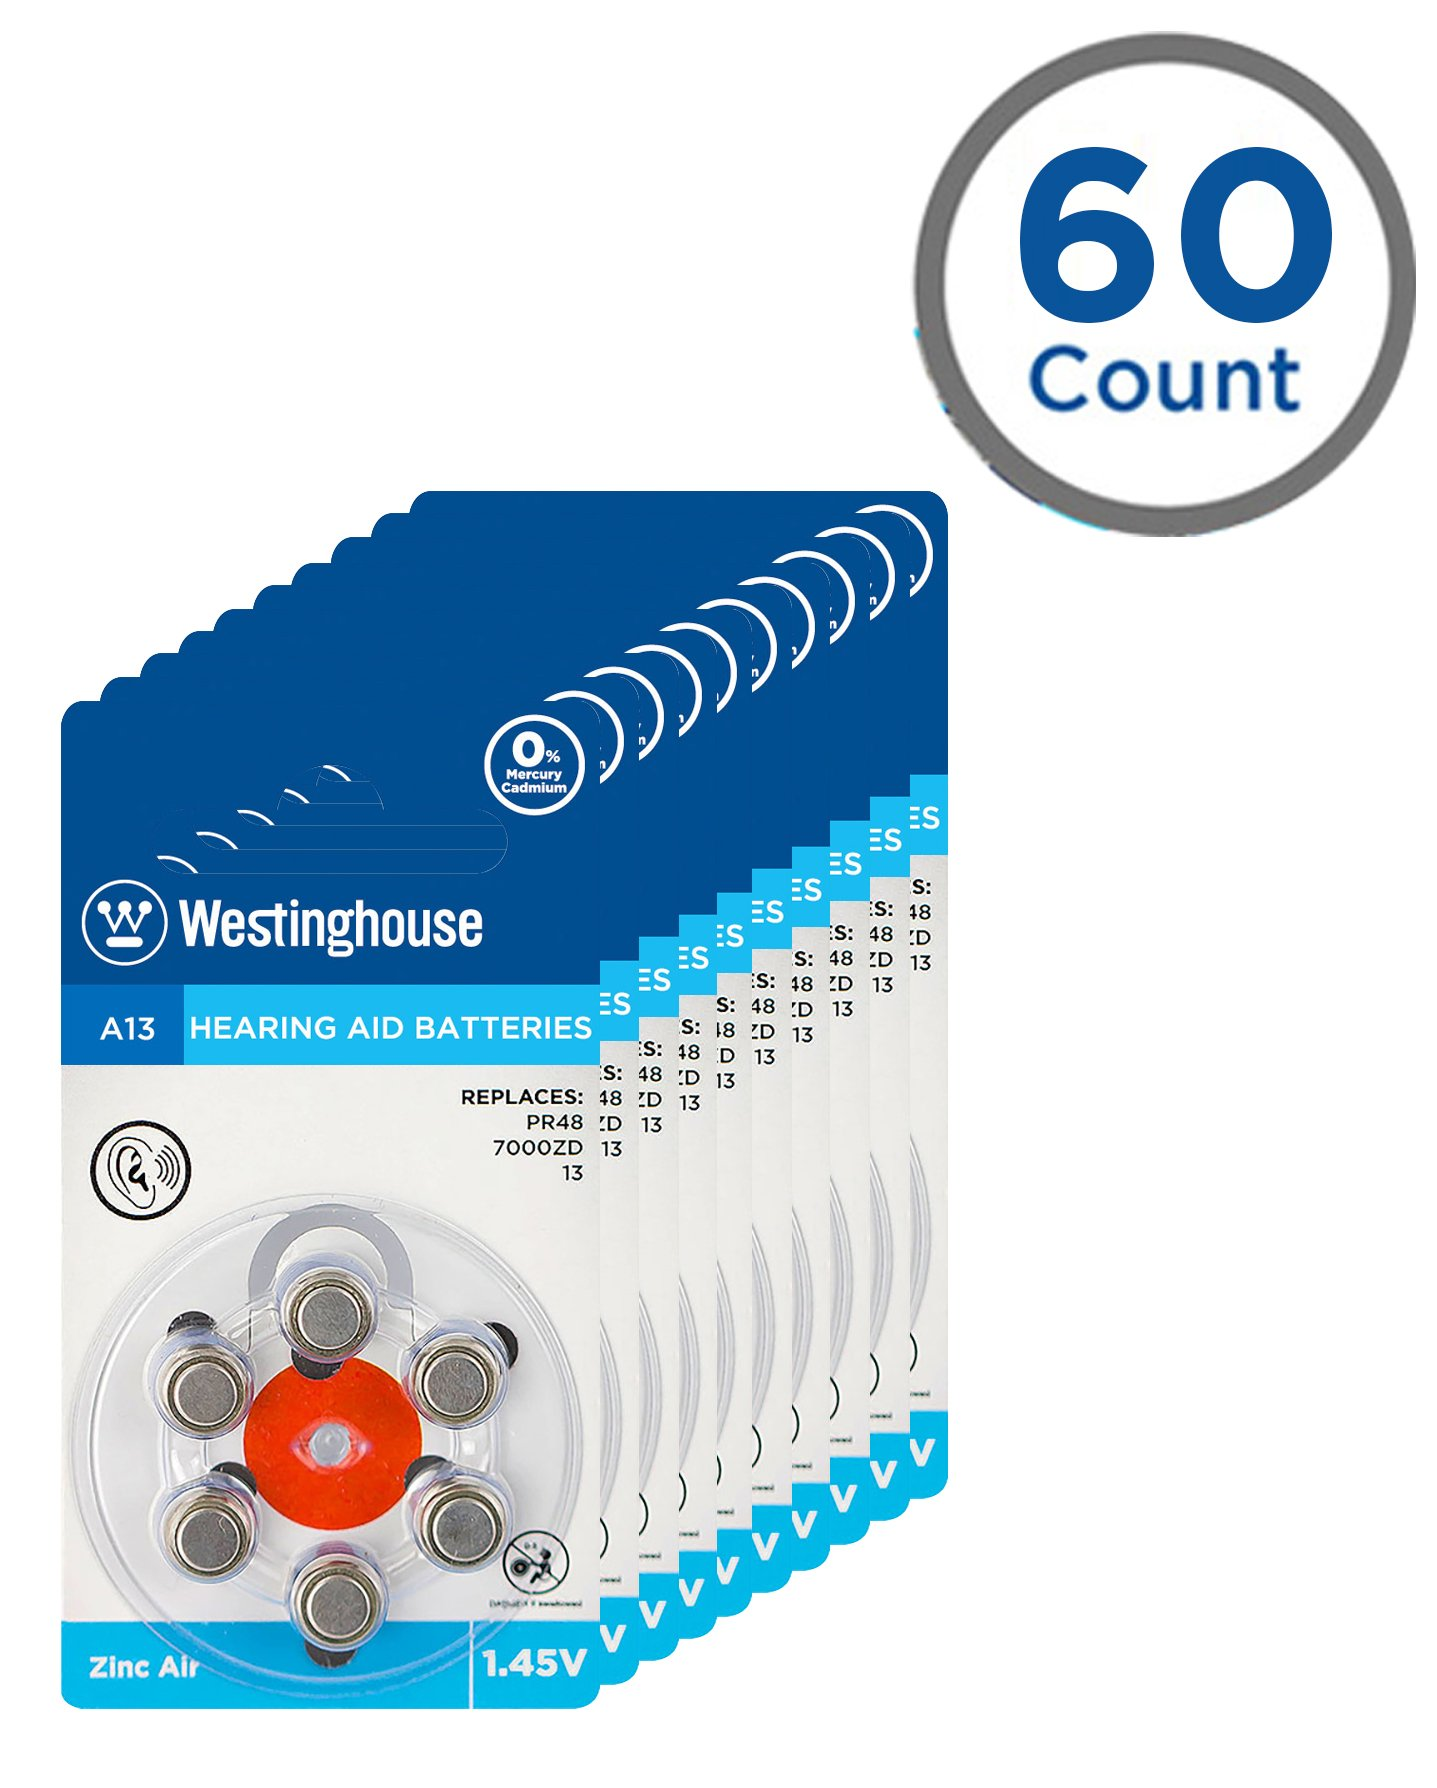 Westinghouse Hearing aid Battery A13, Zinc Air Batteries, Mercury Free (A13, 60 Counts)